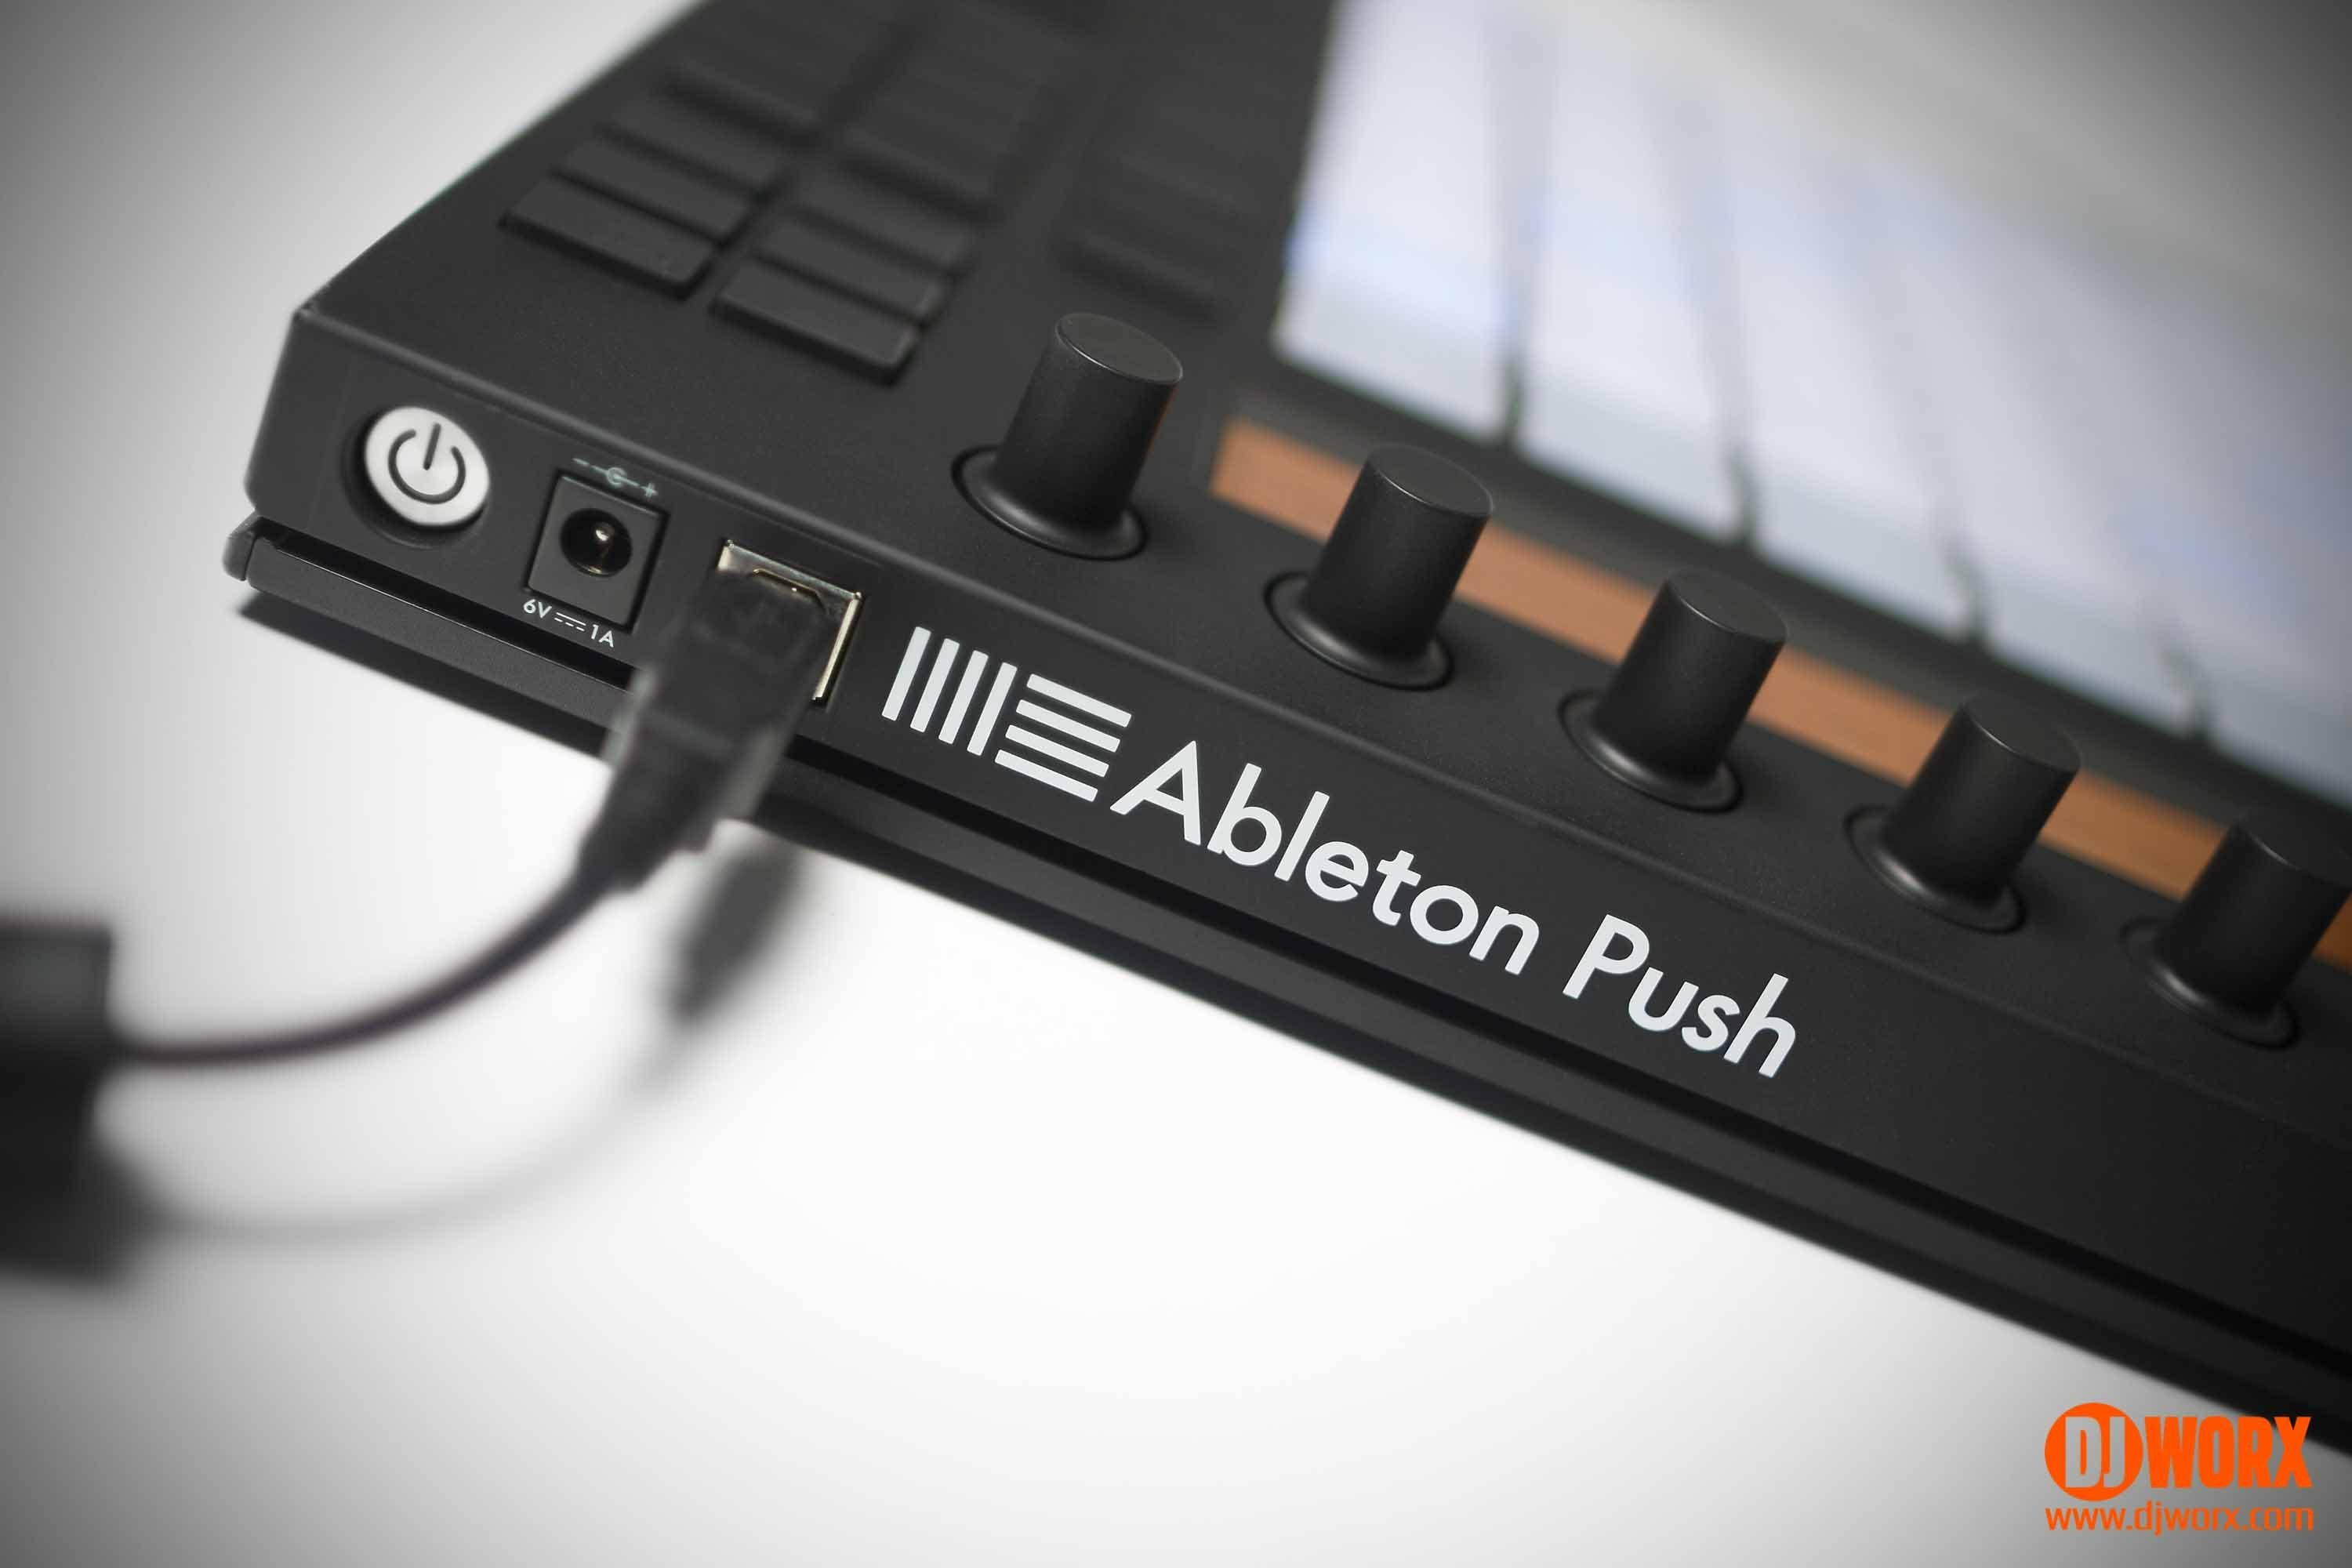 ableton push controller review (10)